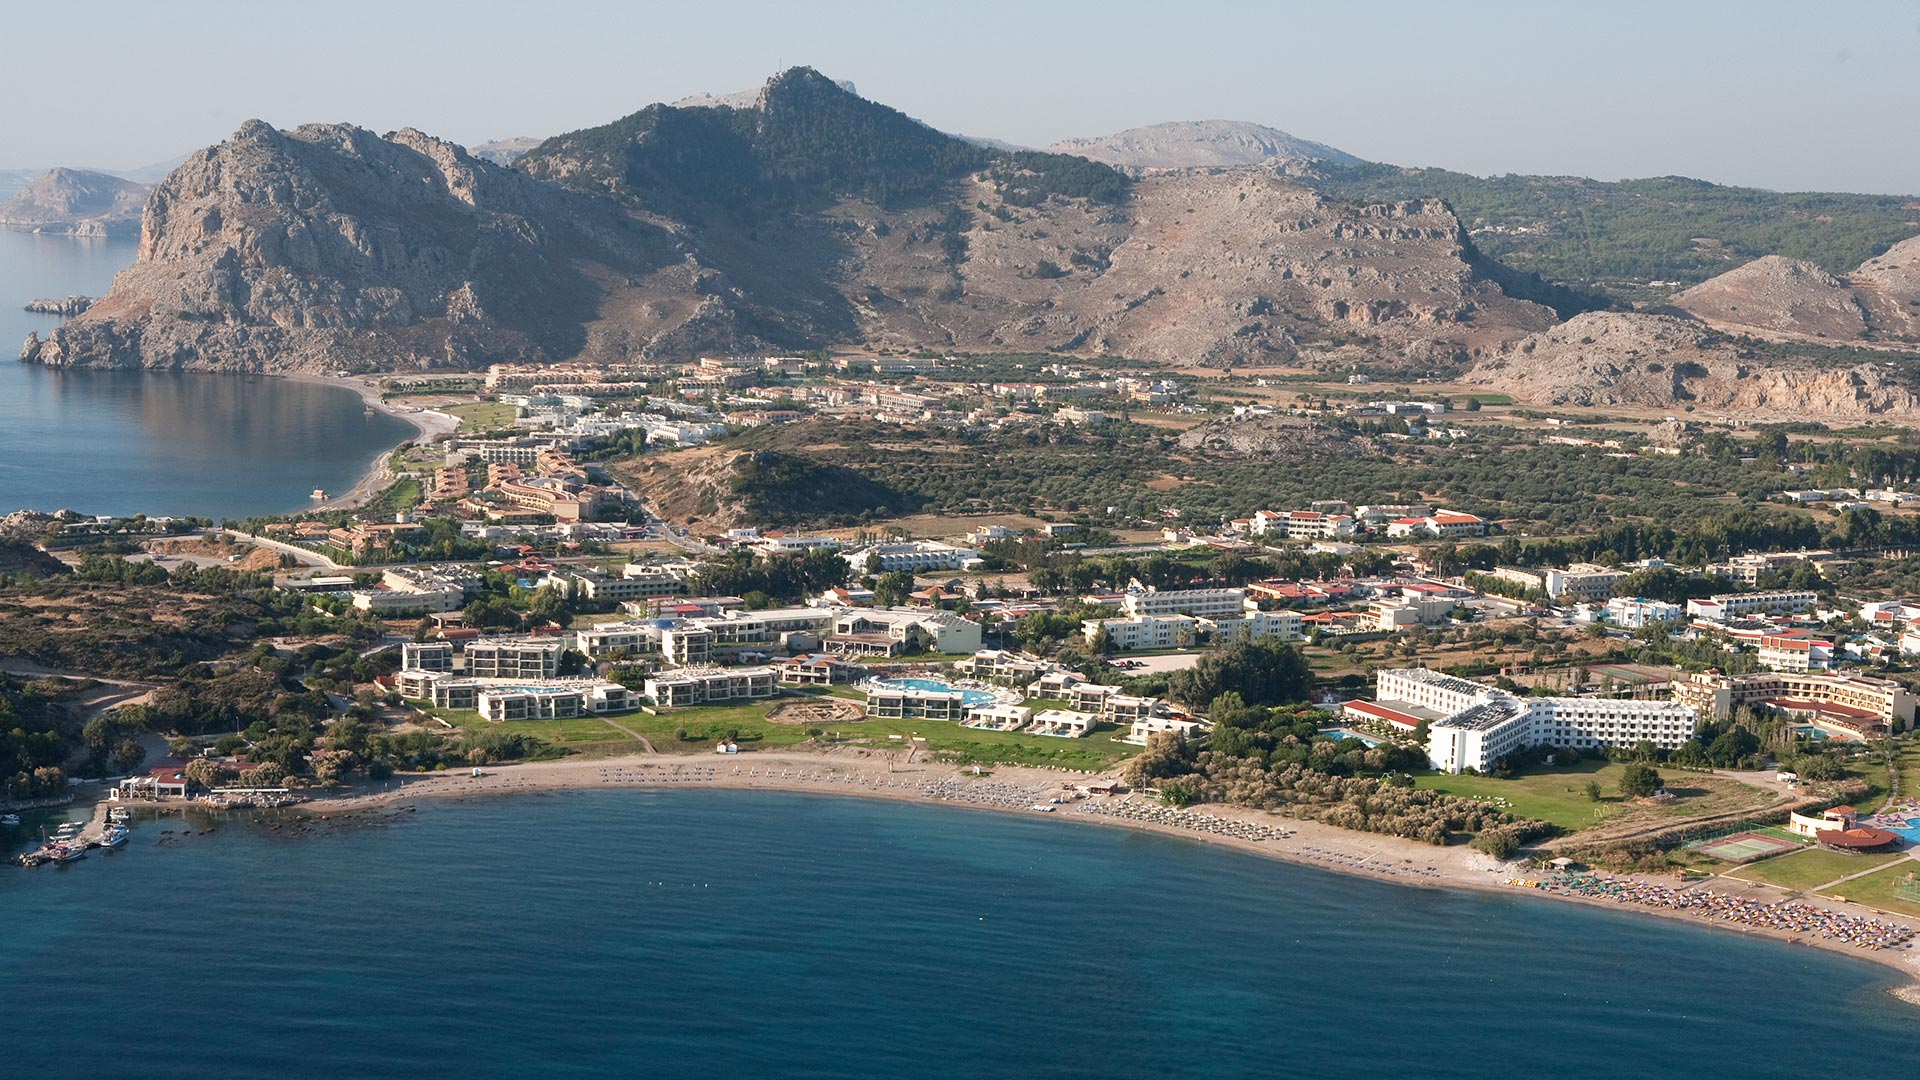 Destination-Along the picturesque coastline of Rhodes, located in the Dodecanese region of Greece, sits an elegant all-inclusive adults only resort.